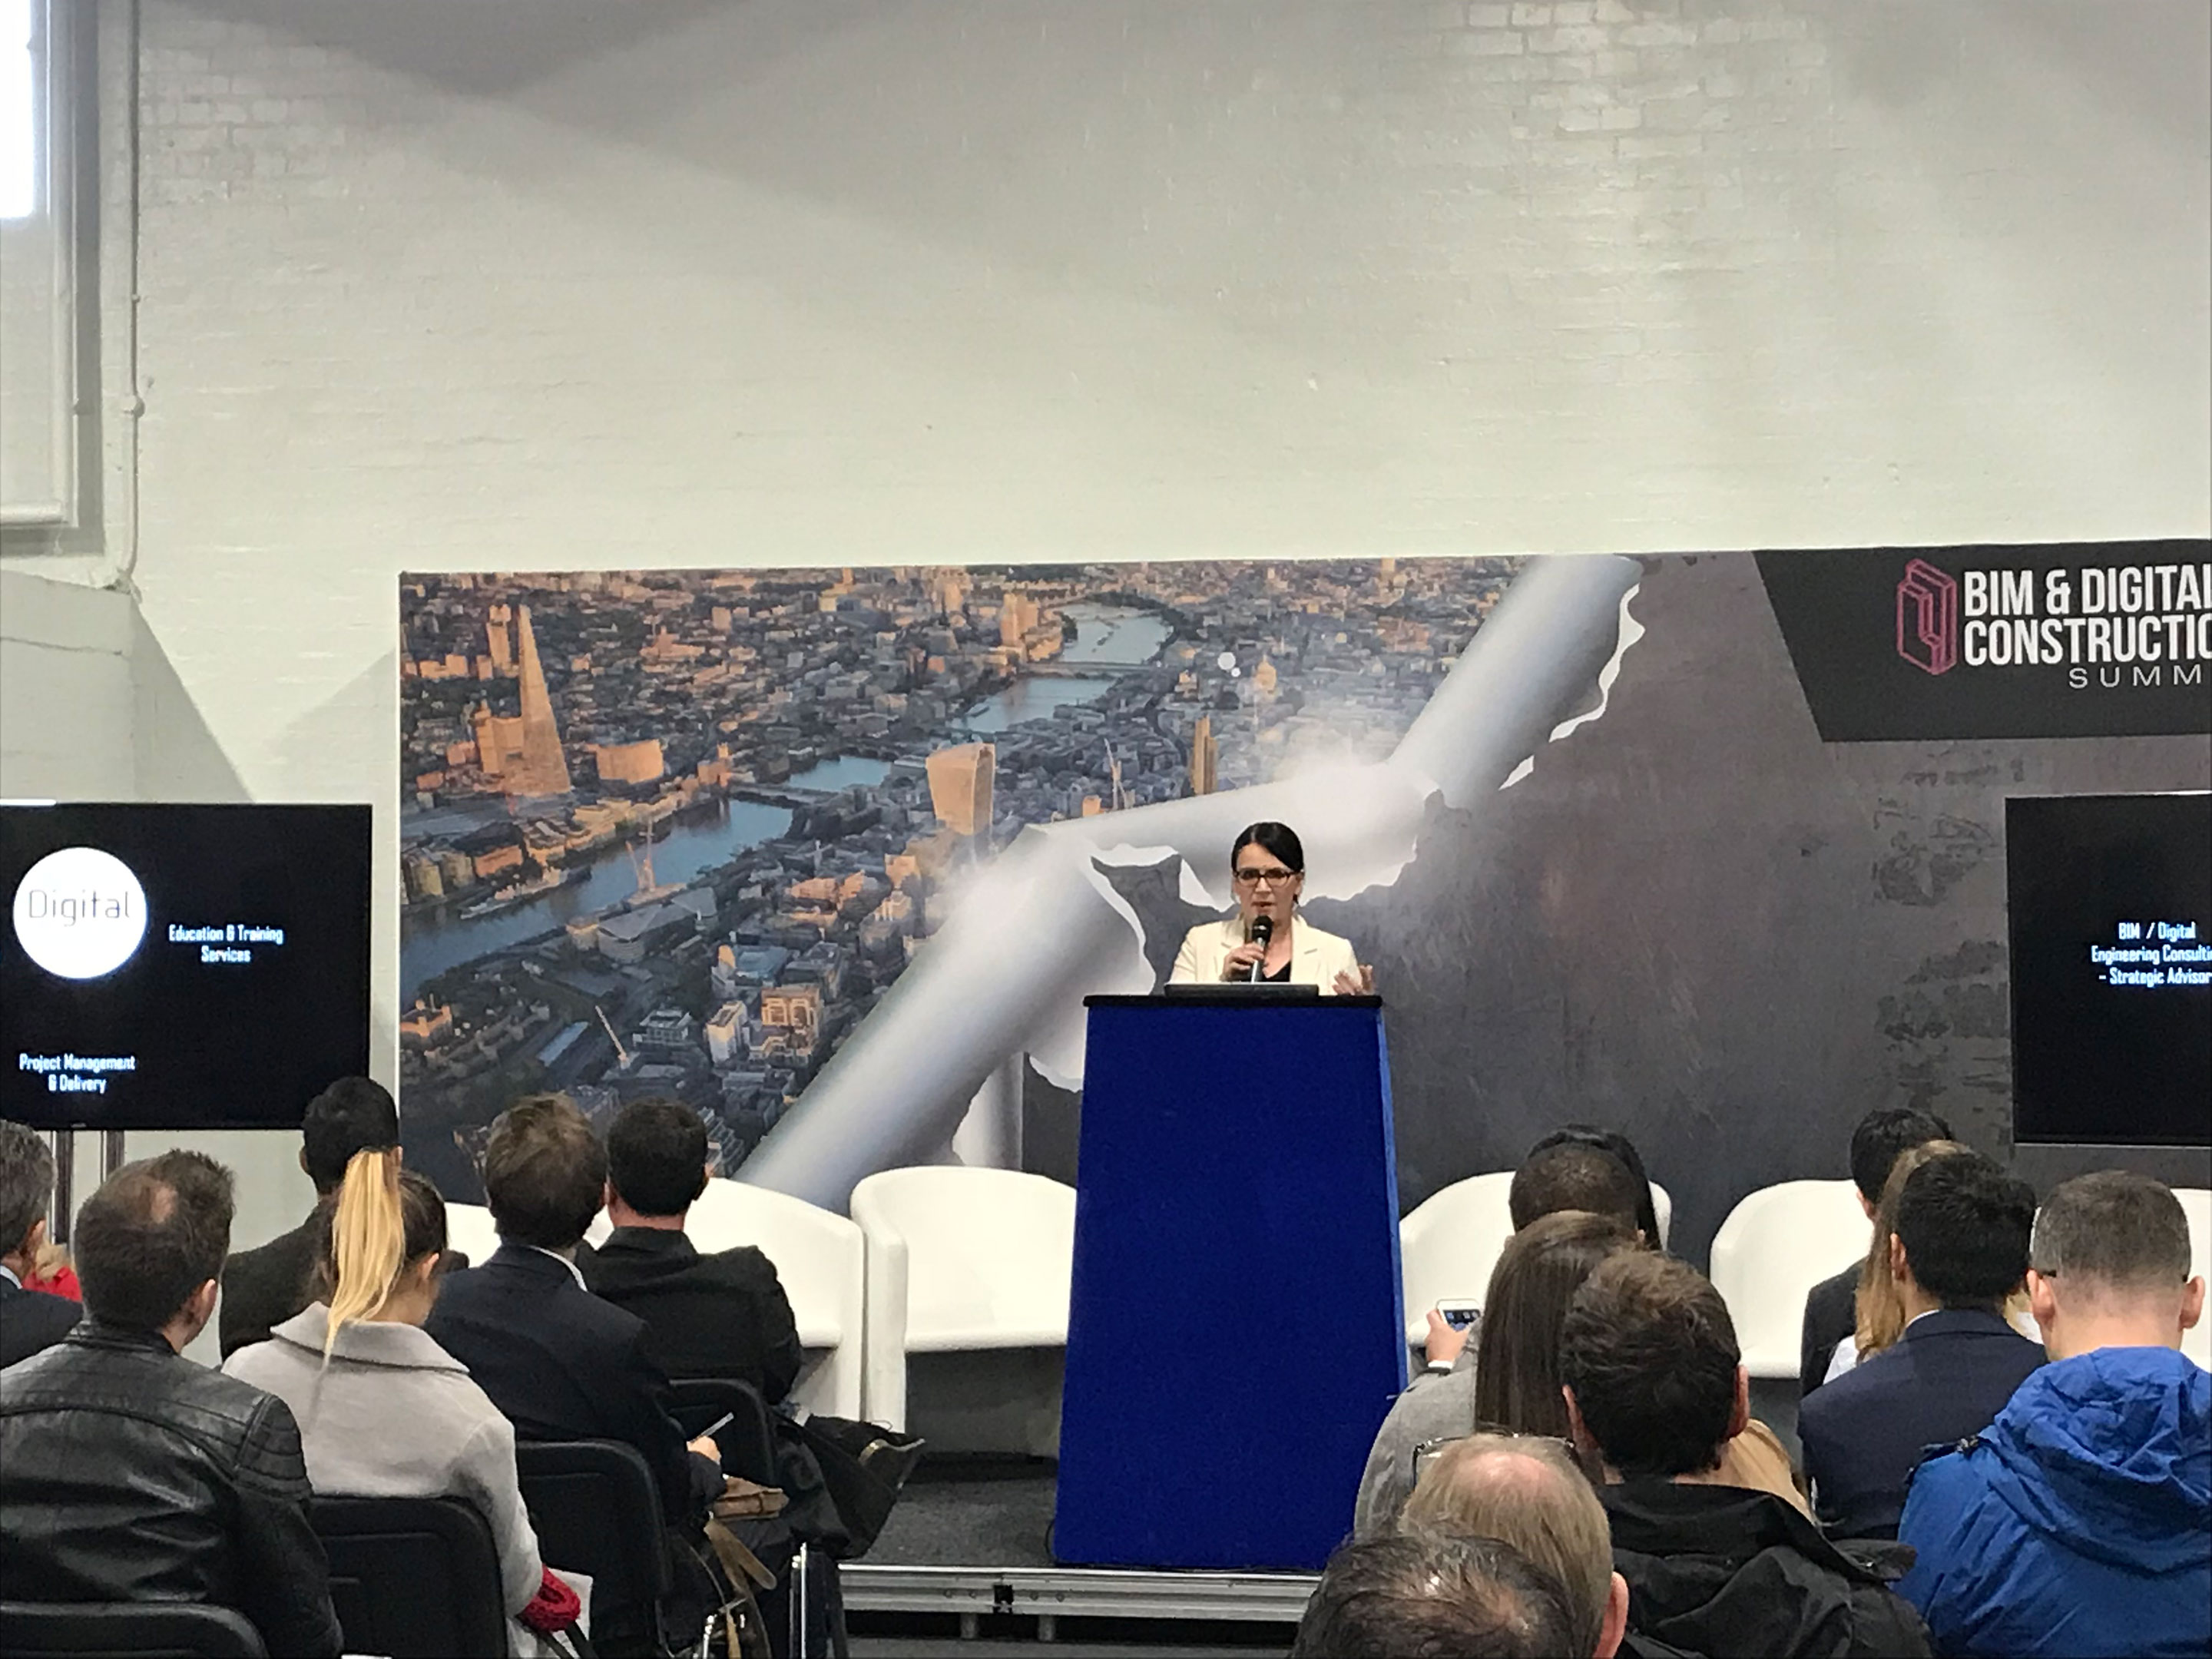 Digital Node's Director, Rebecca De Cicco, speaking at a construction event